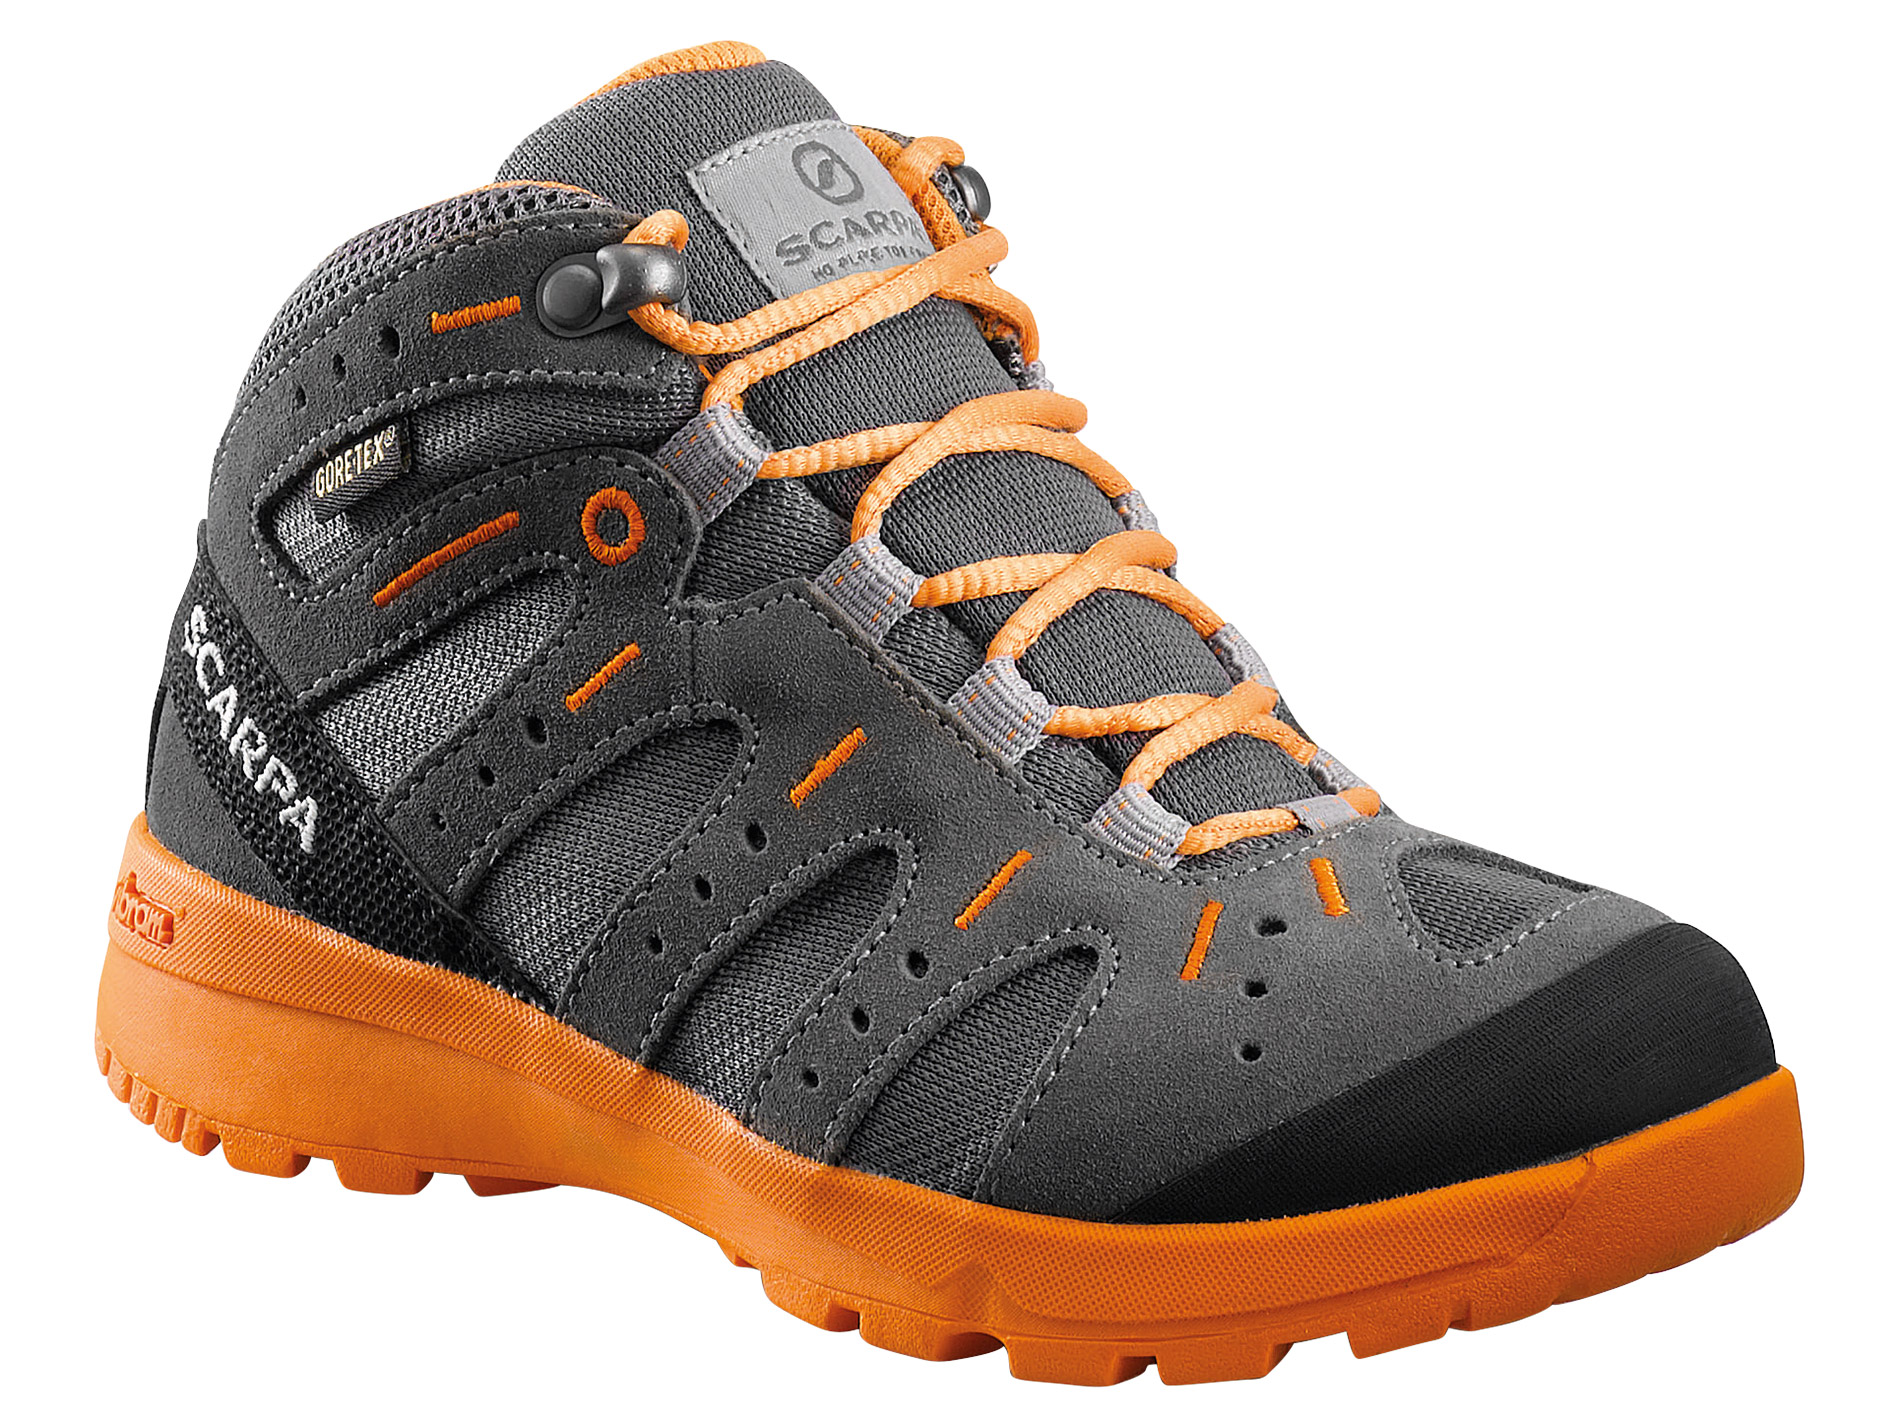 Scarpa Lupo Mid GTX Grey Orange-30